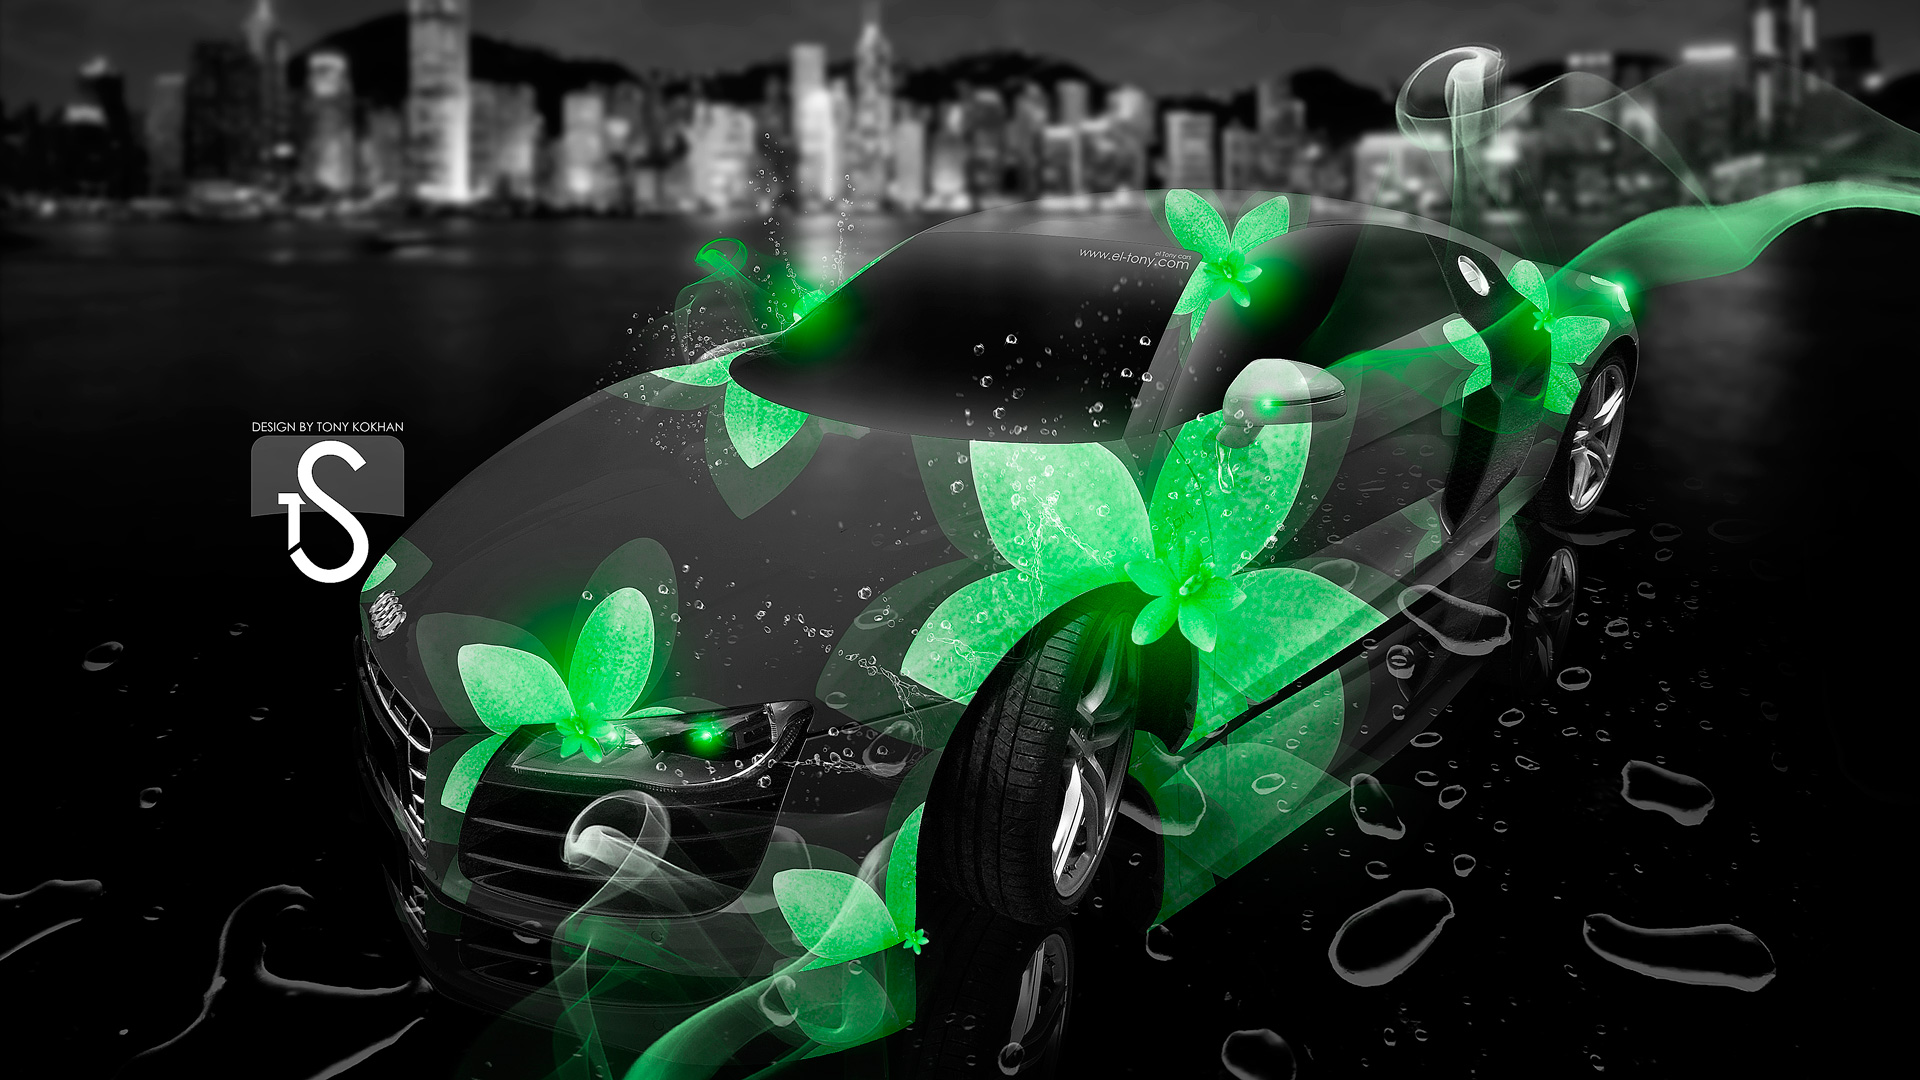 Attirant Nissan 370Z Crystal City Car 2013 · Audi R8 Neon Flowers Fantasy City 2013